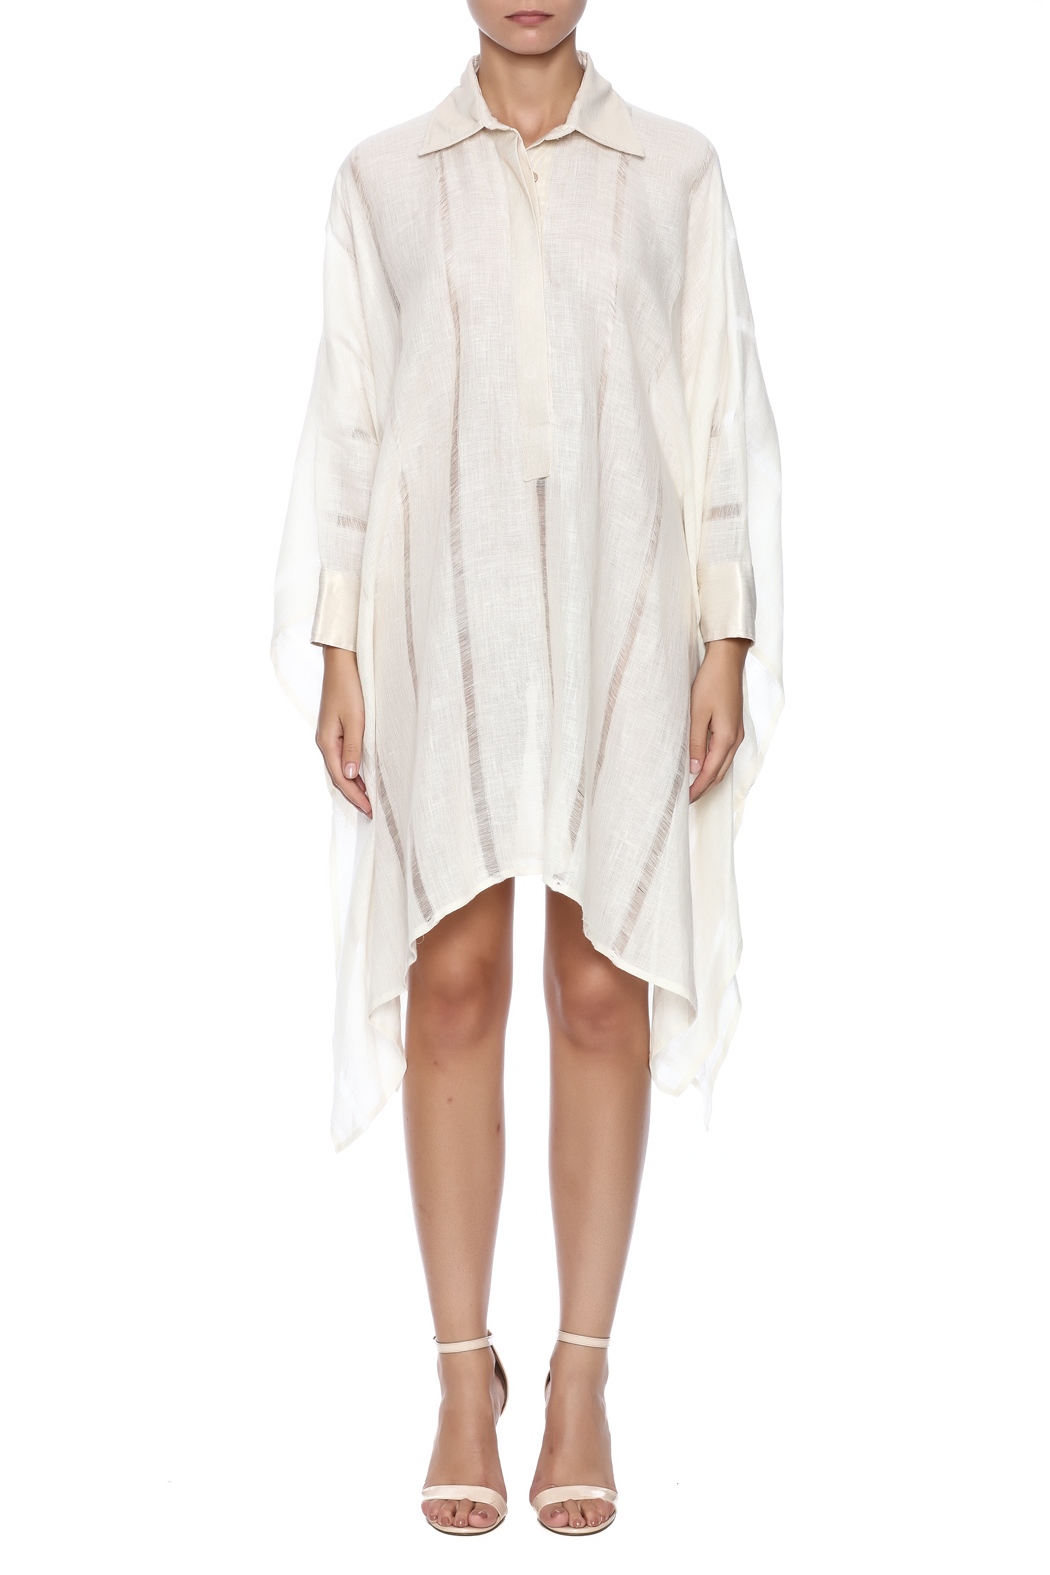 Royal Jelly Harlem Ivory Stripe Shirt Dress - Front Cropped Image